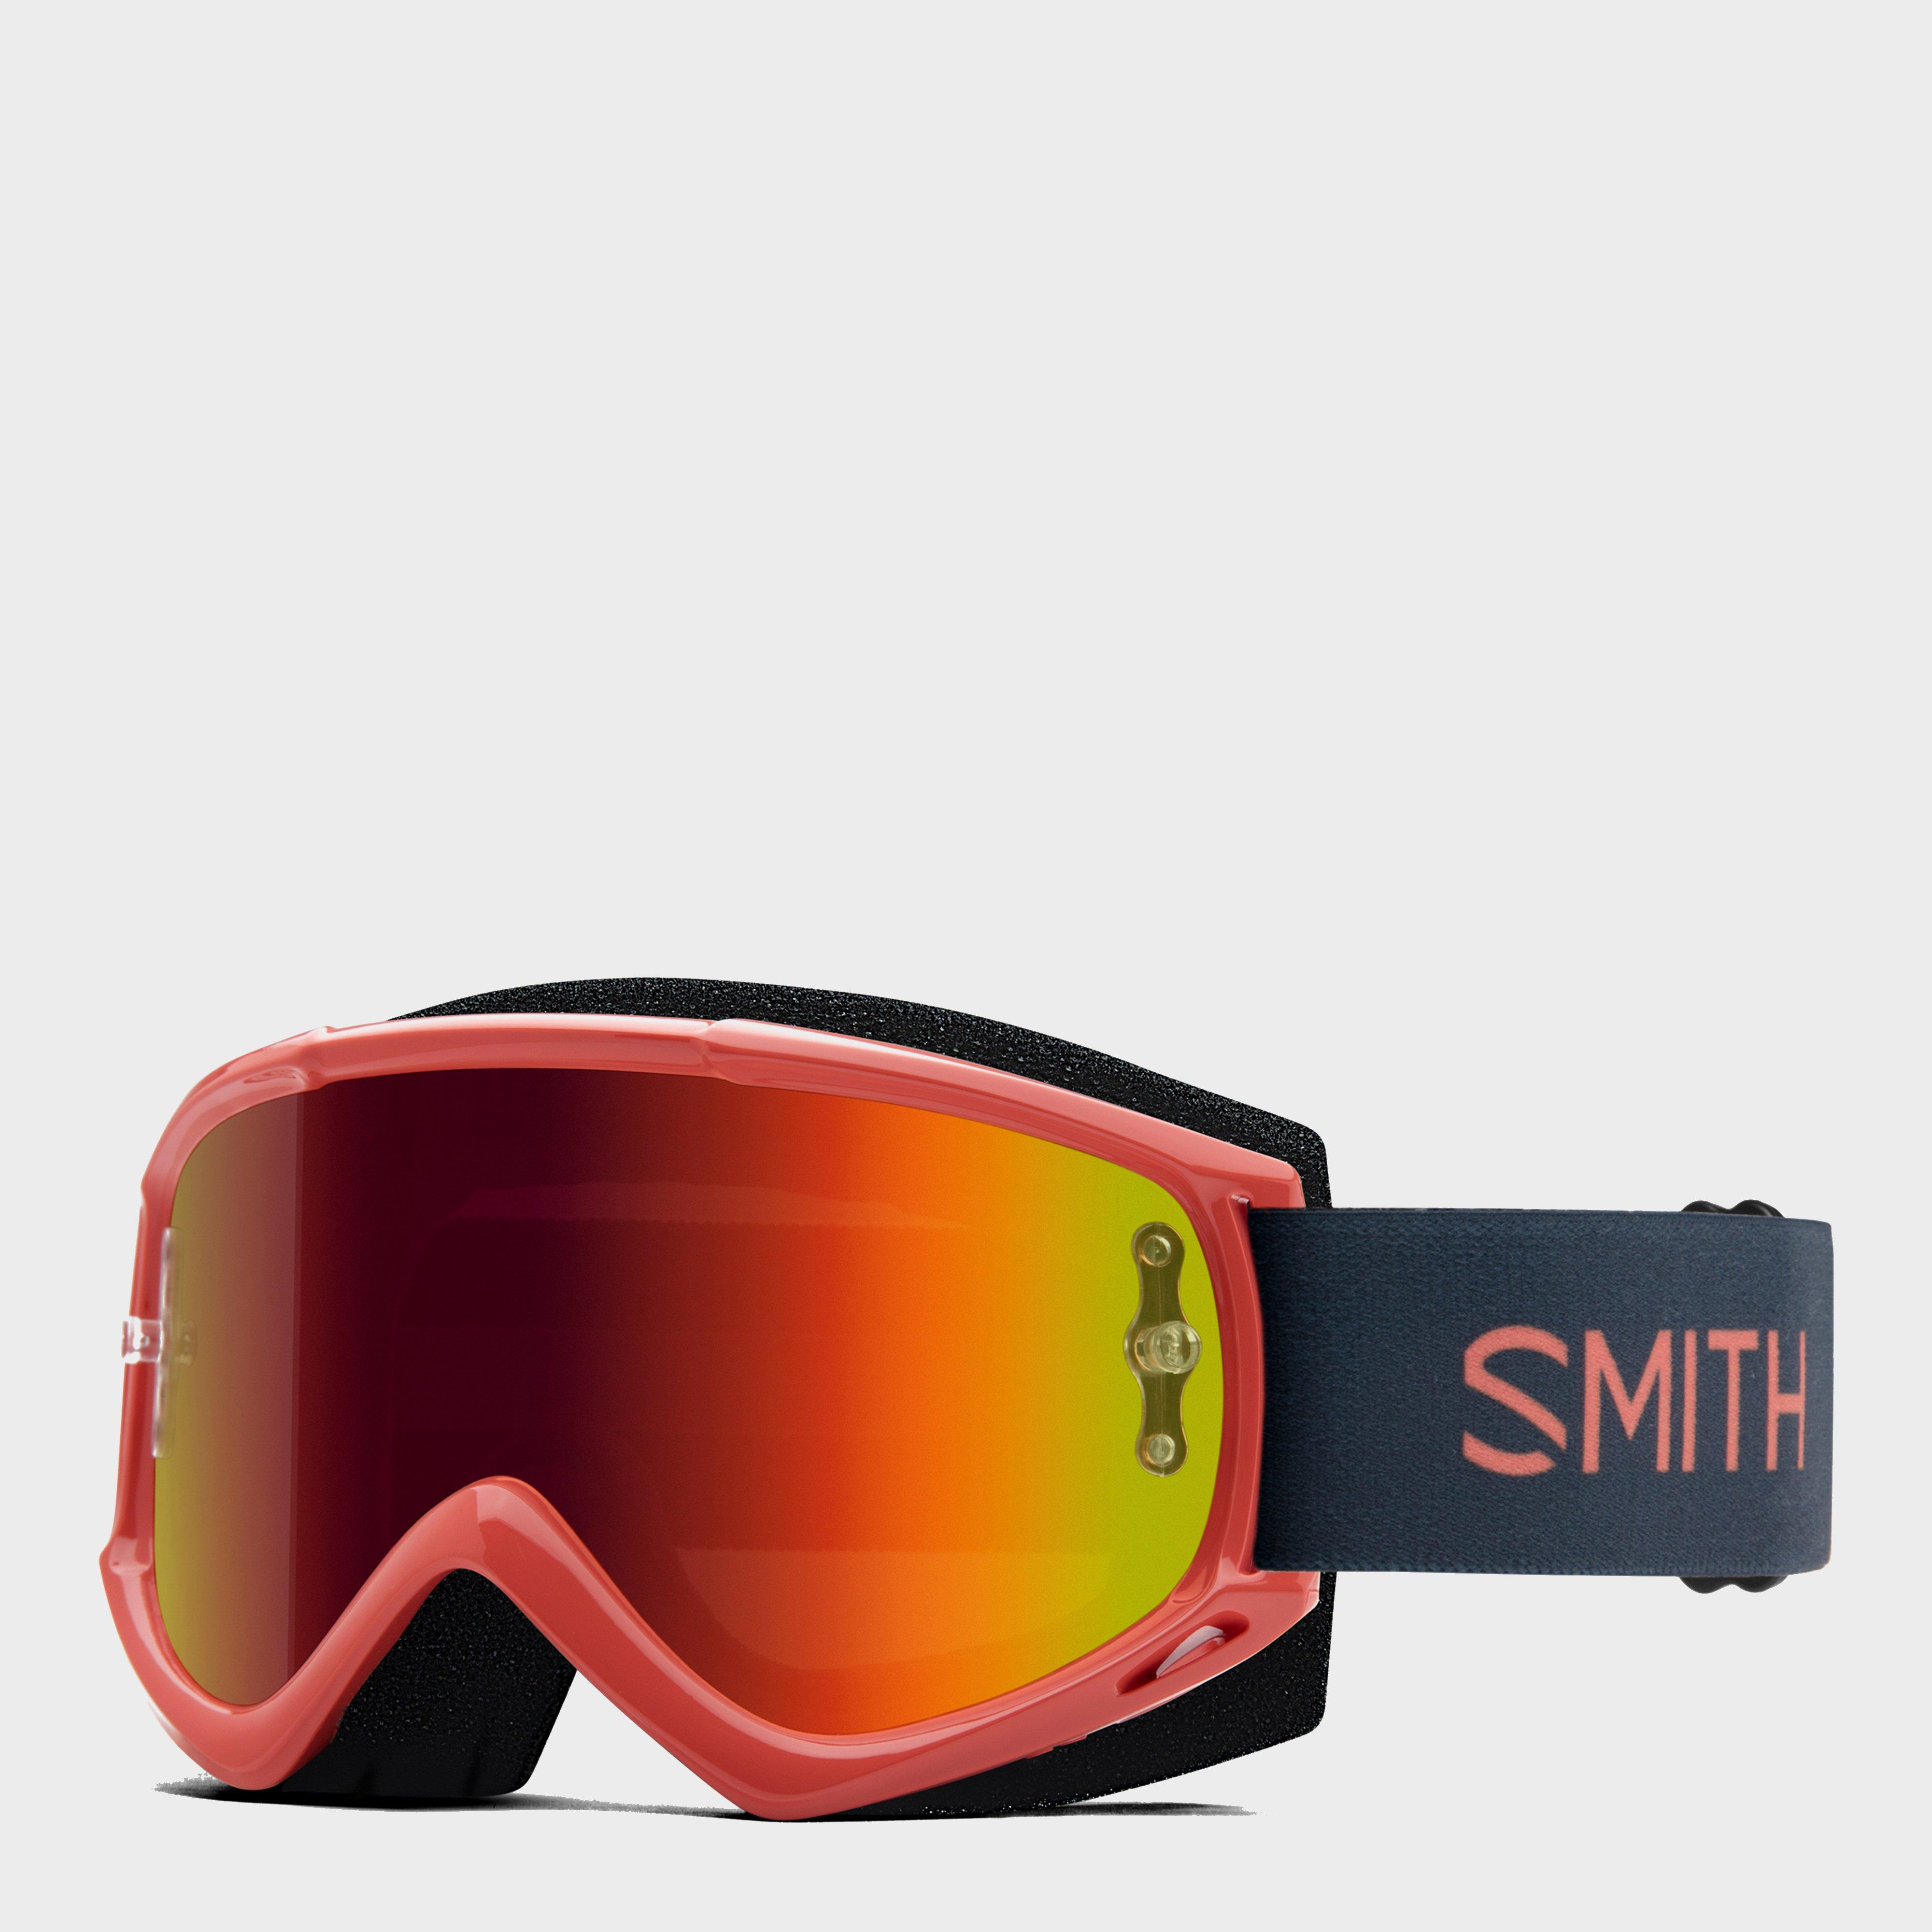 Clearance Clearance Fuel V.1 Max Goggles - Red, Red